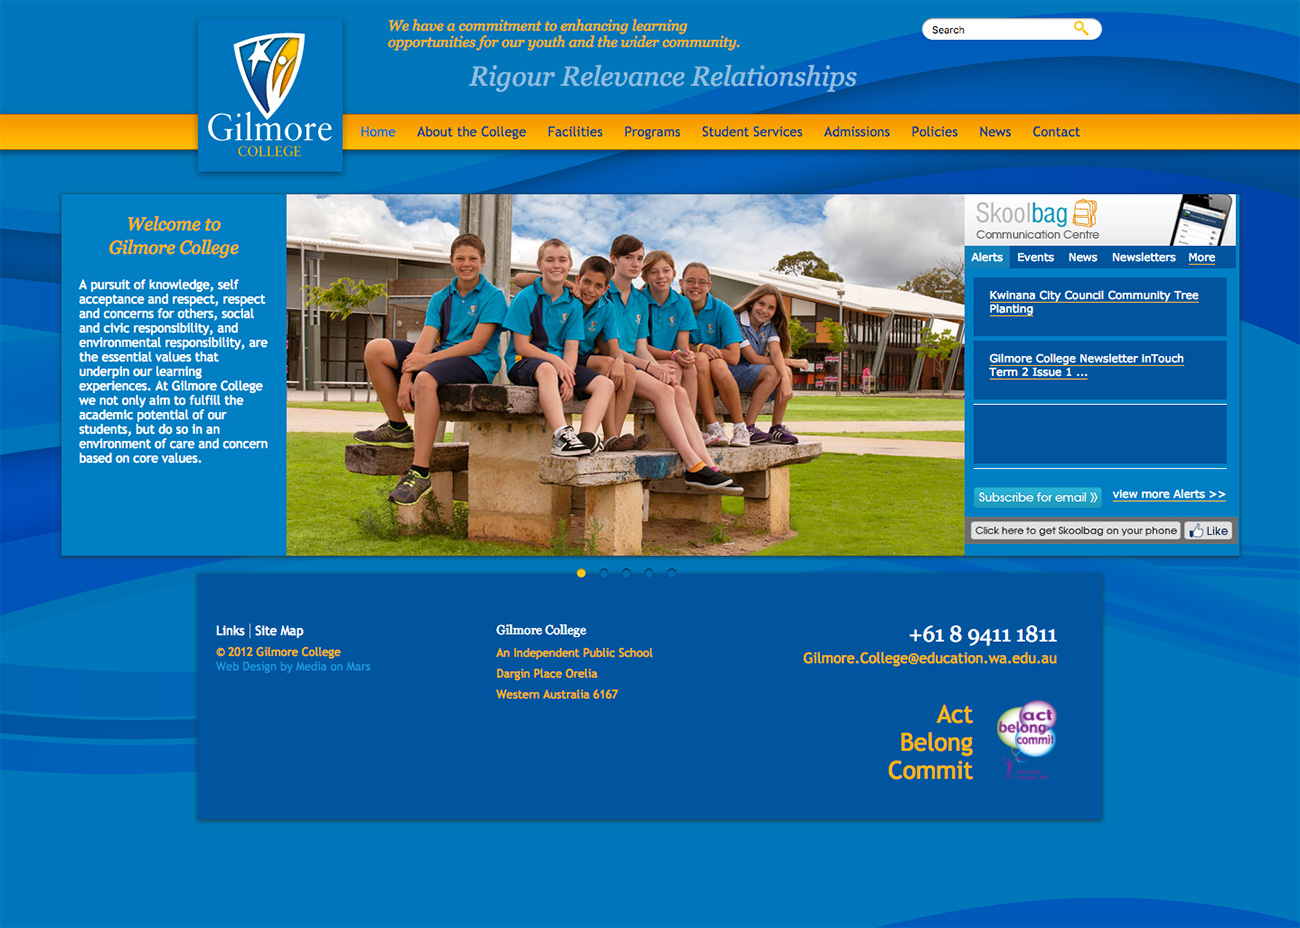 Screen grab of Gilmore College website homepage